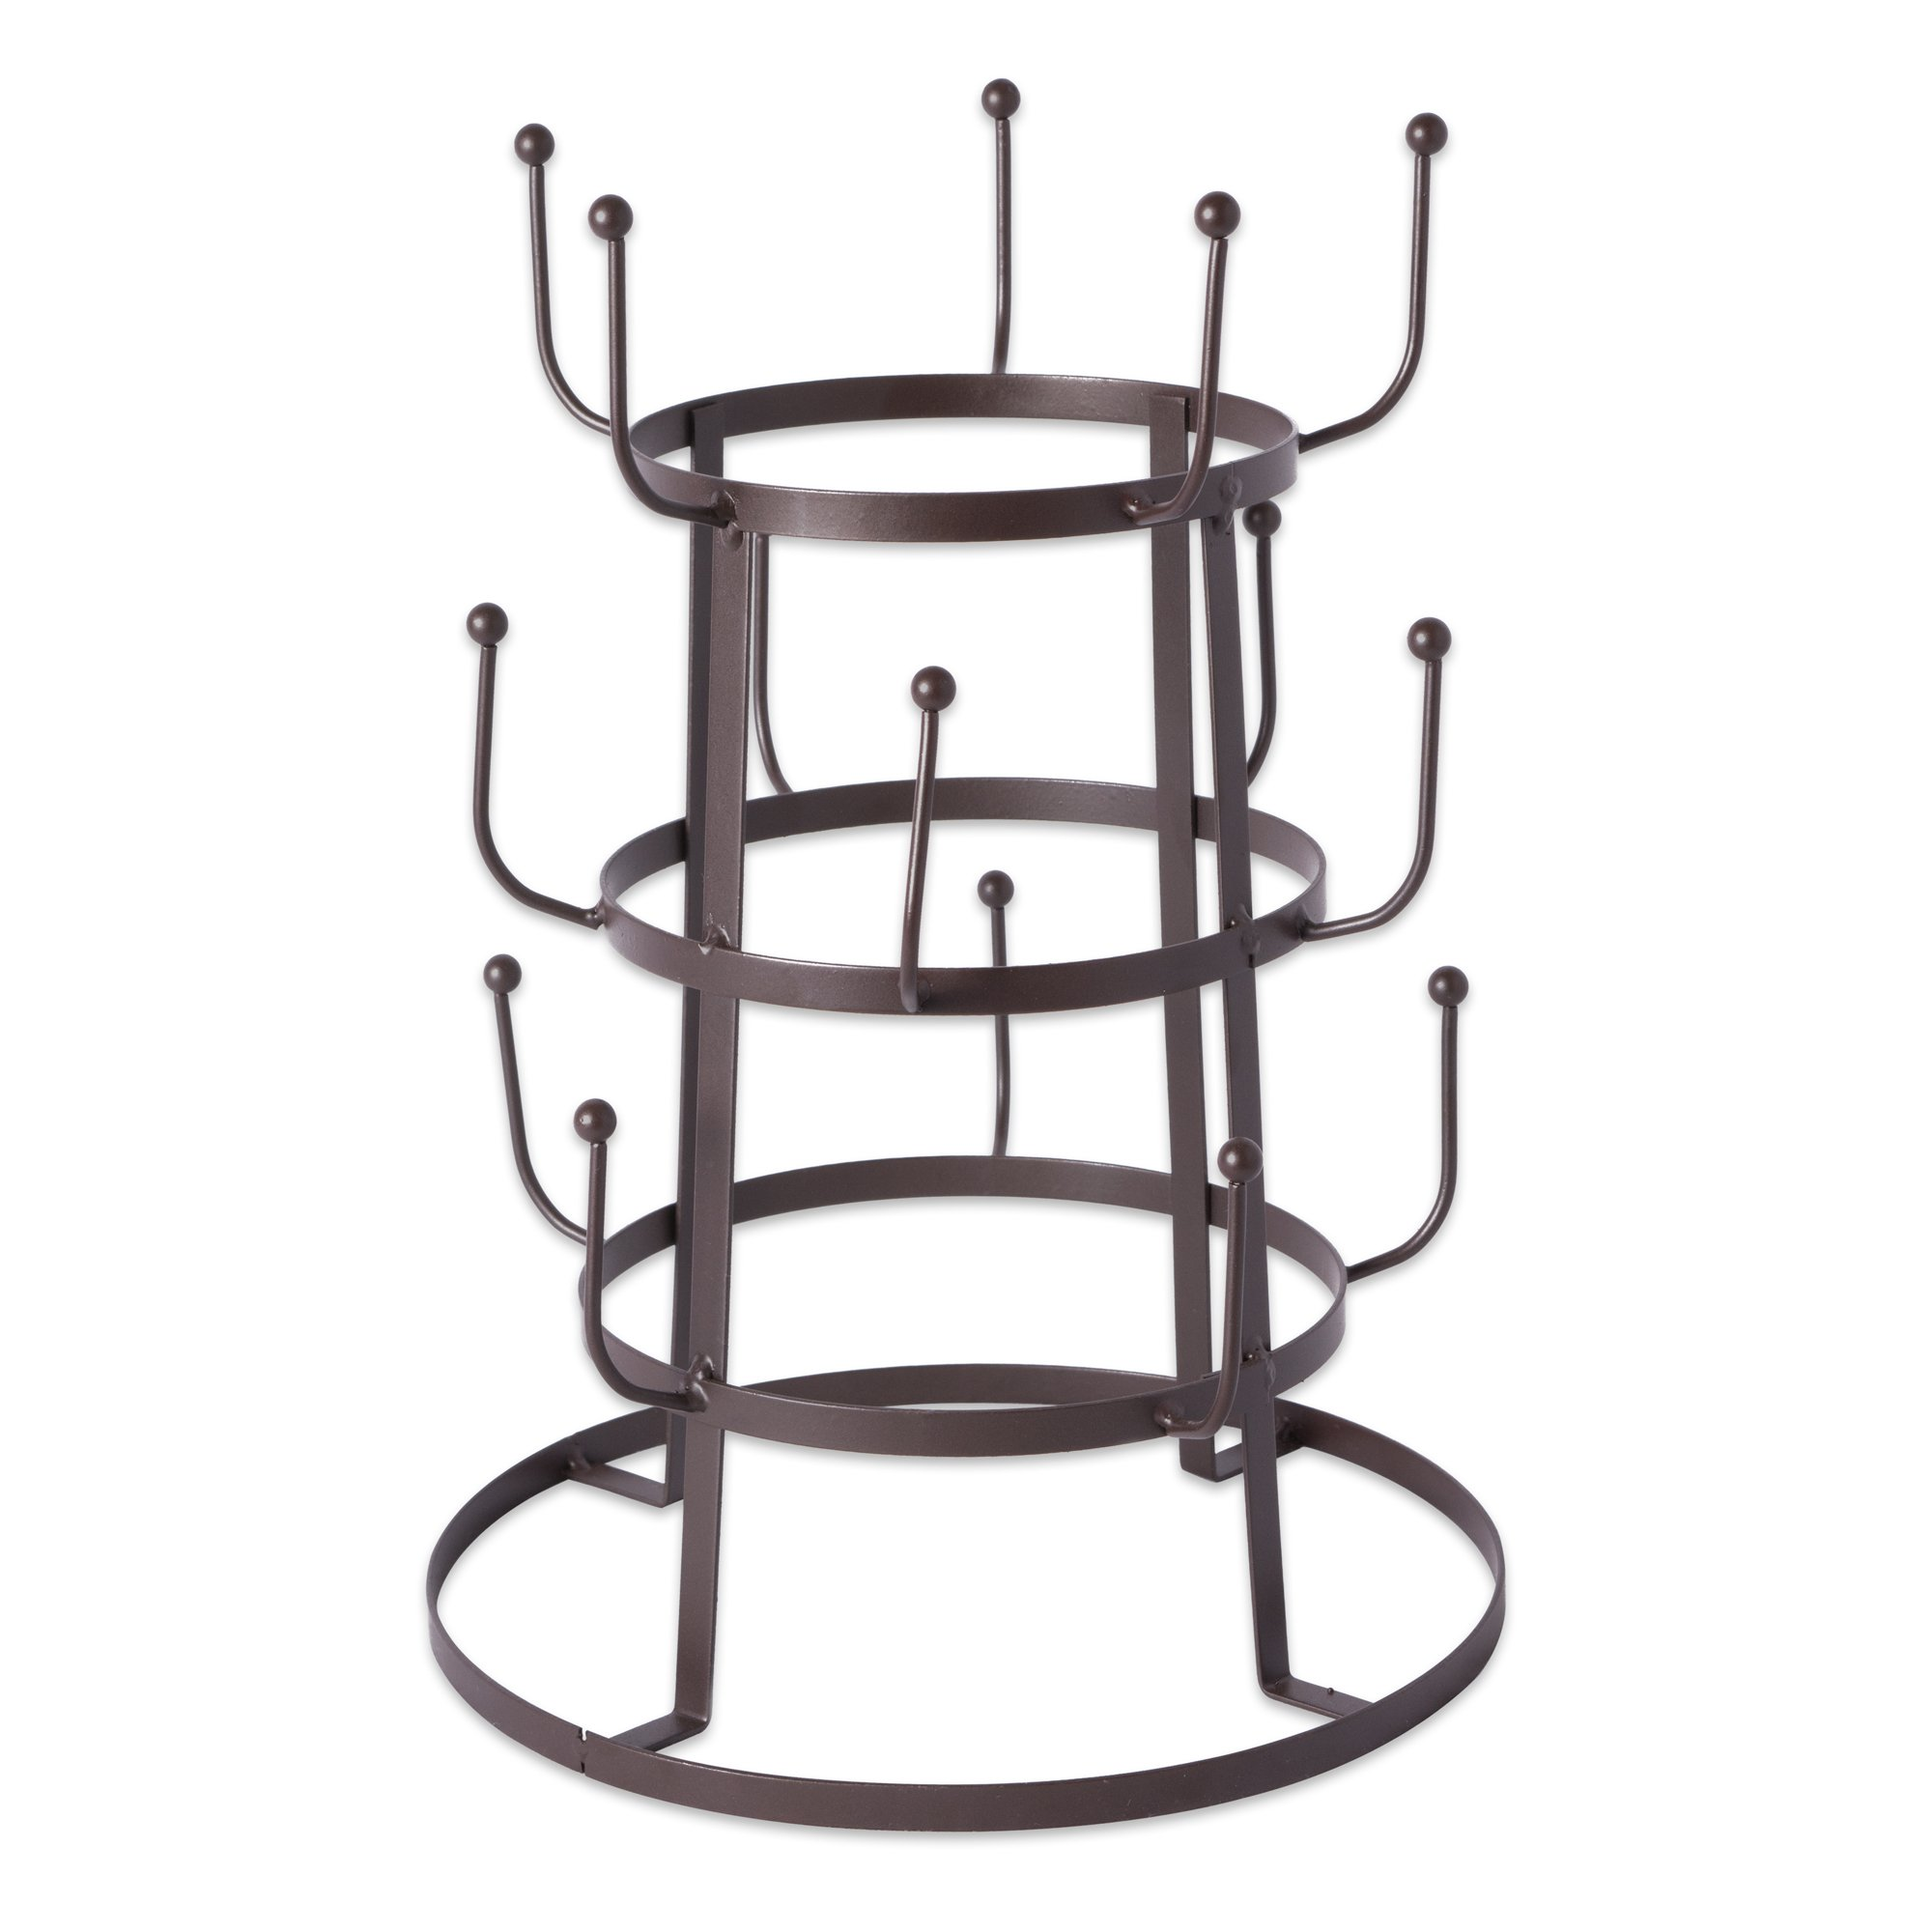 Home Traditions 3 Tier Countertop or Pantry Vintage Metal Wire Tree Stand for Coffee Mugs, Glasses, and Cups, 15 Mug Capacity, Rustic Bronze by DII